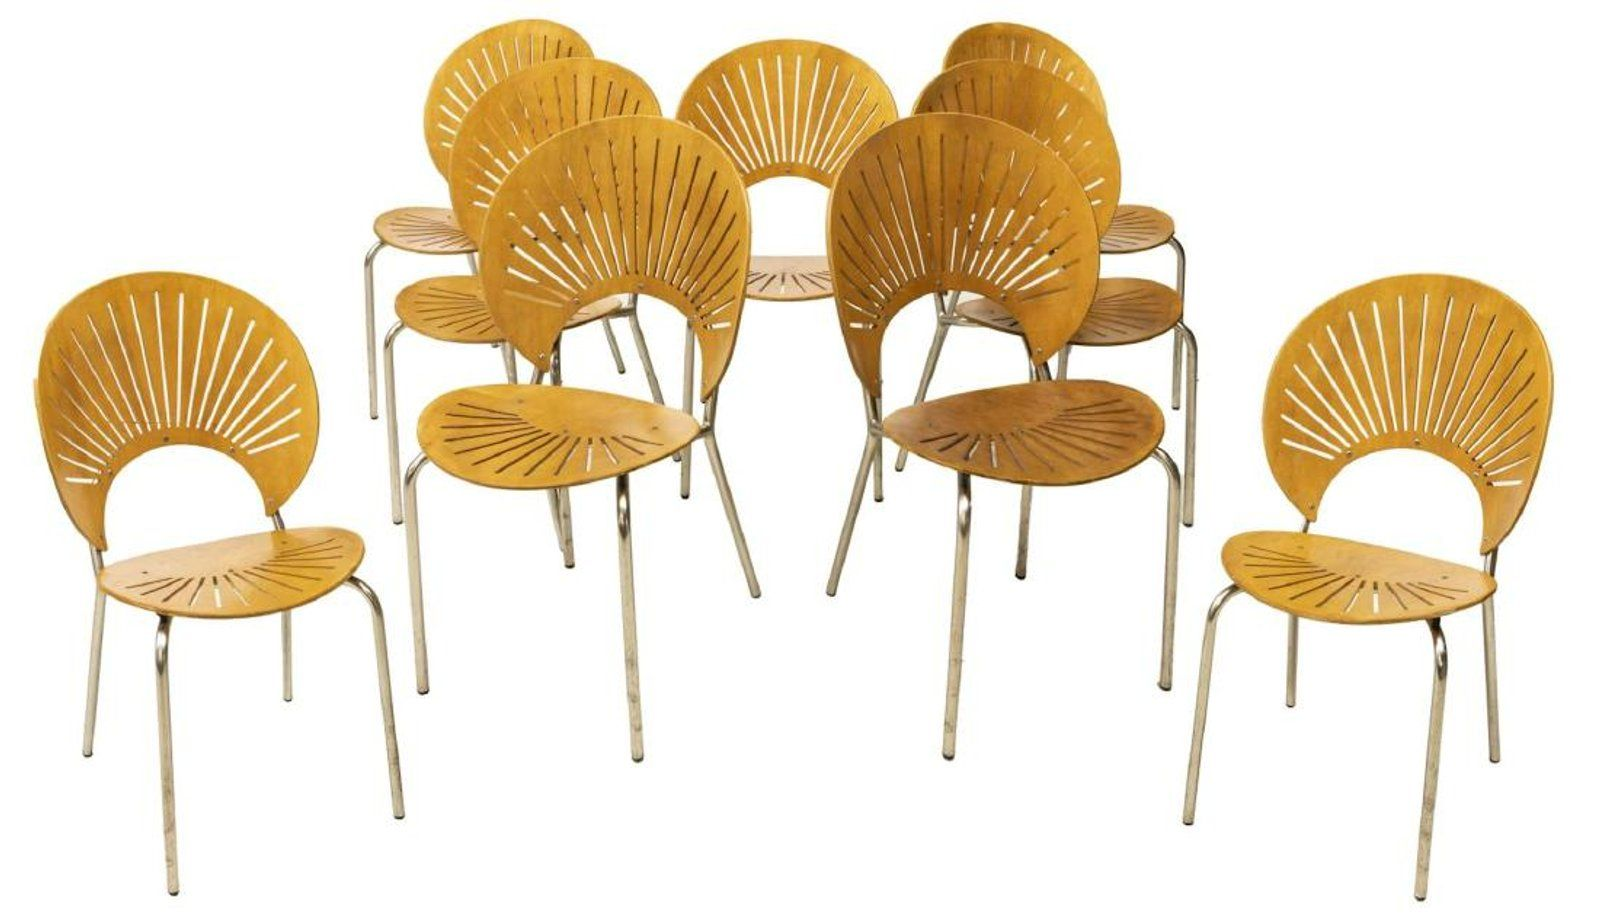 9 trinidad modern chairs nanna ditzel design dining chairs at an upcoming auction you dont need this many but we could split them and i can sell